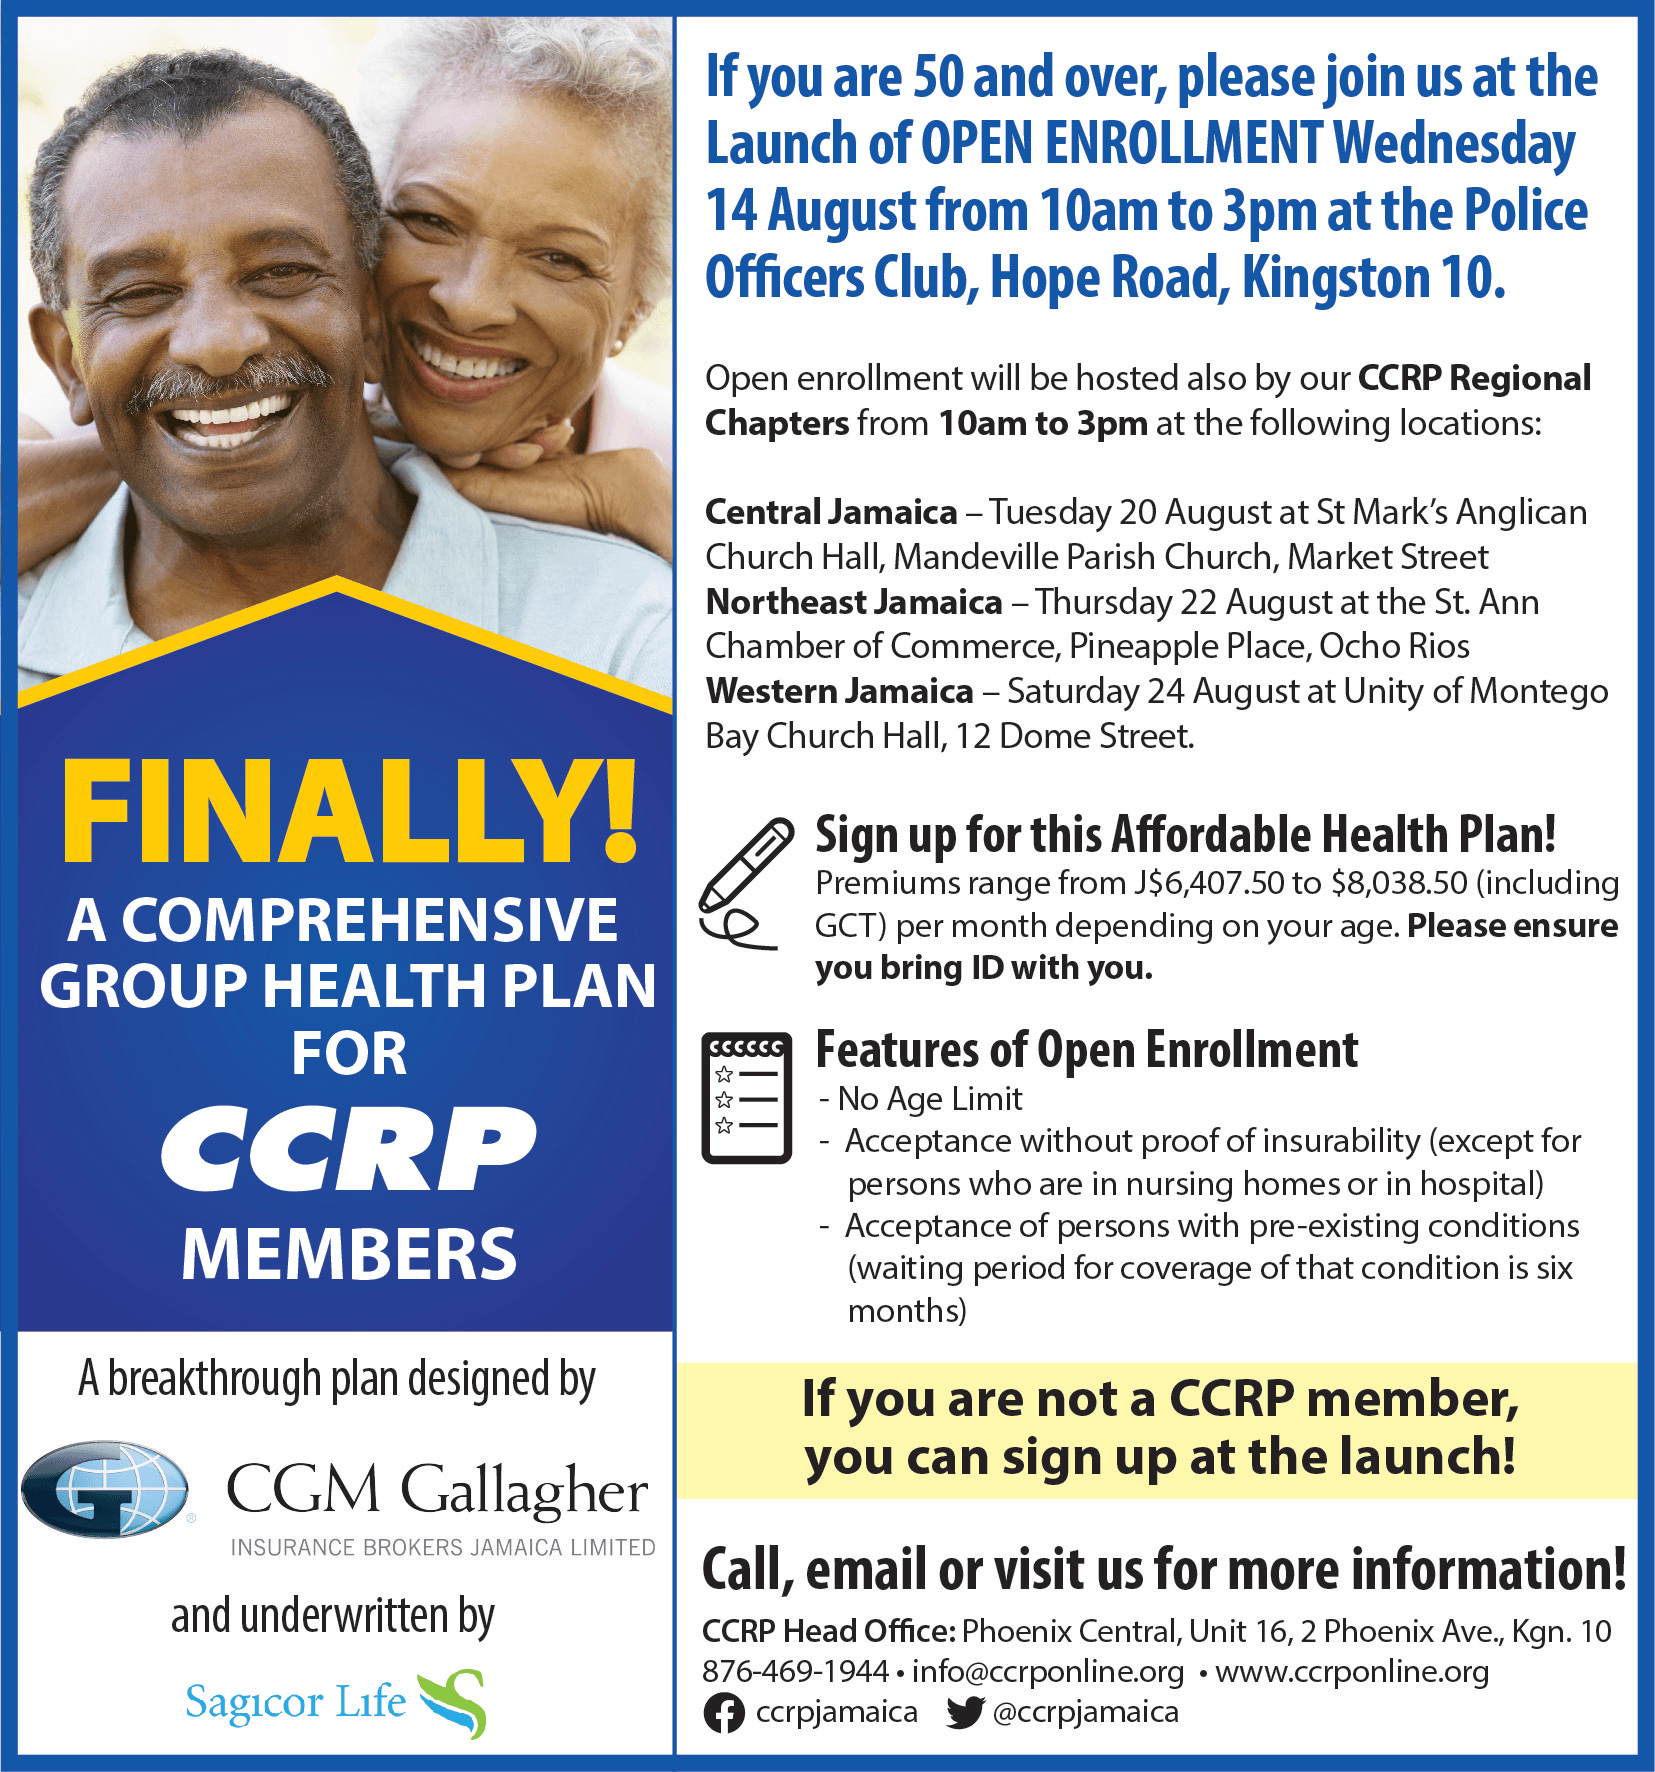 CCRP Group Health Plan